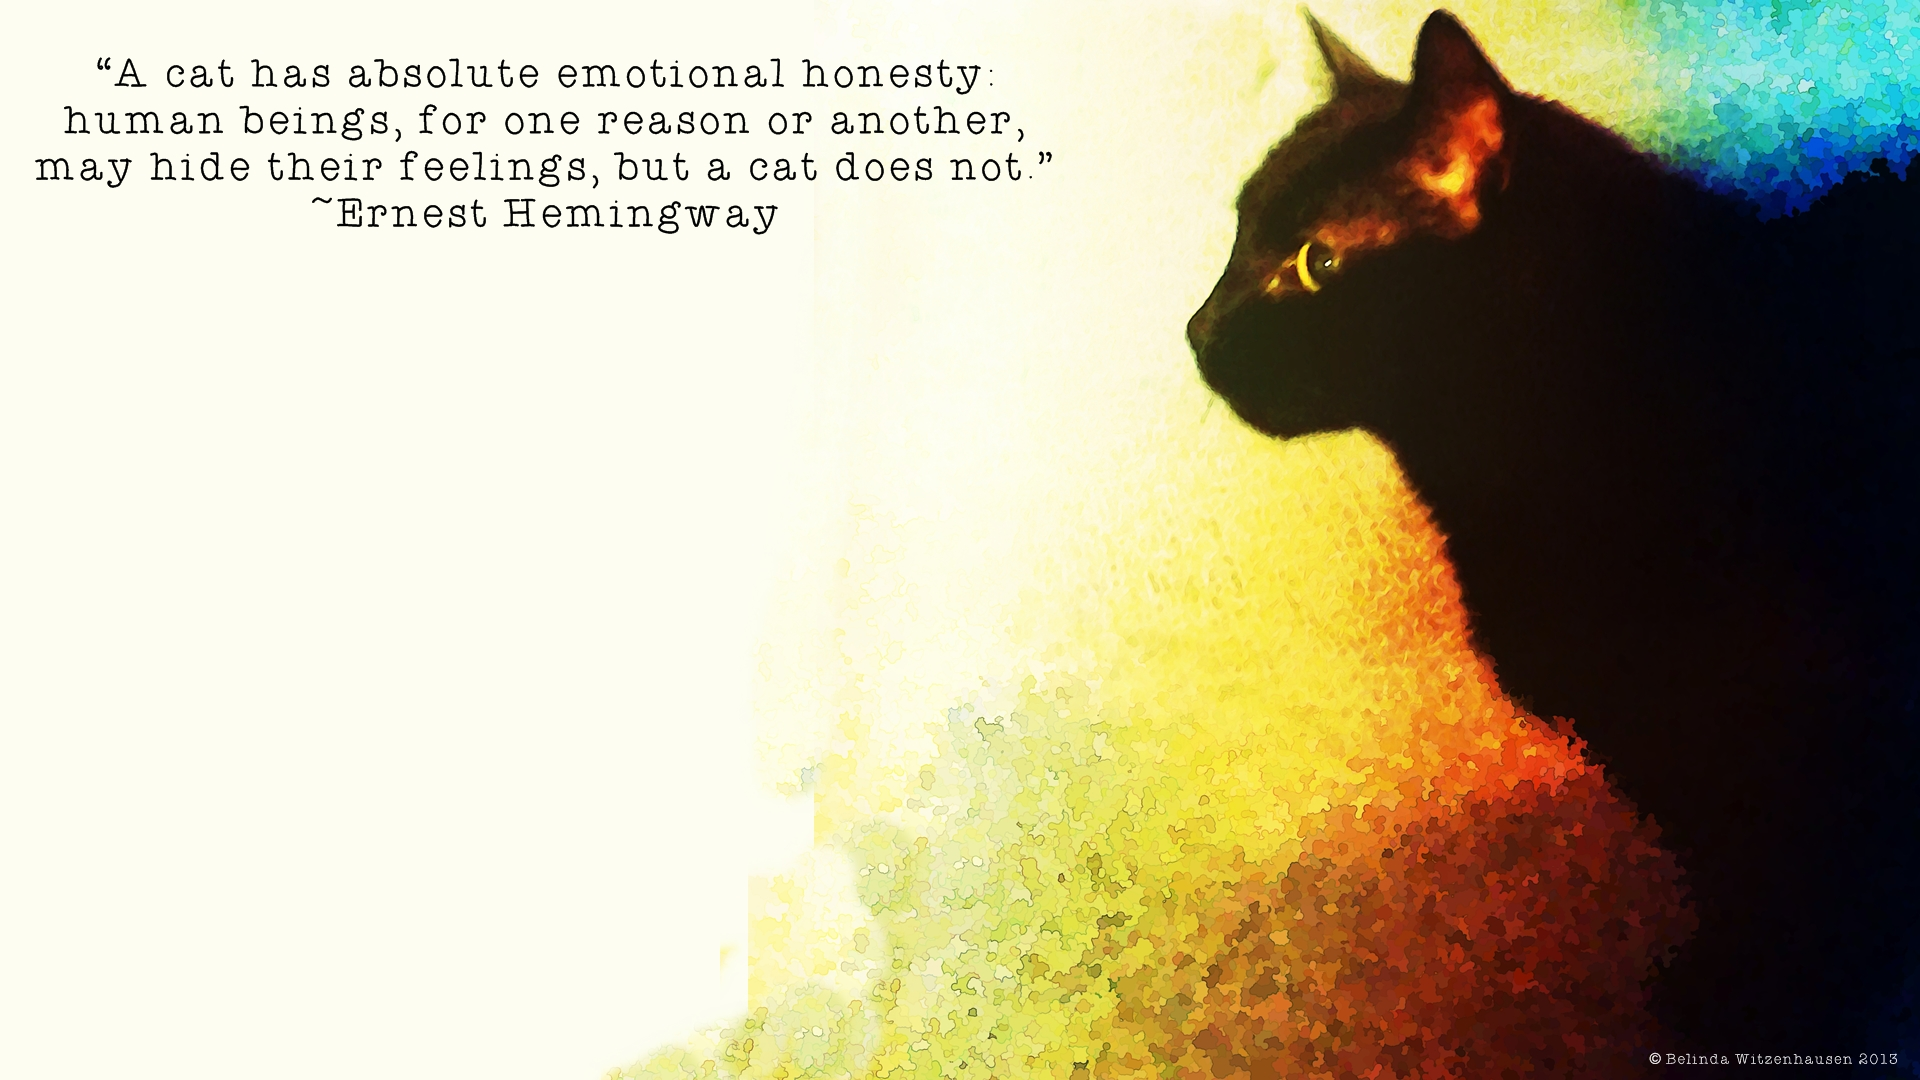 Ernest Hemingway quote Wallpaper